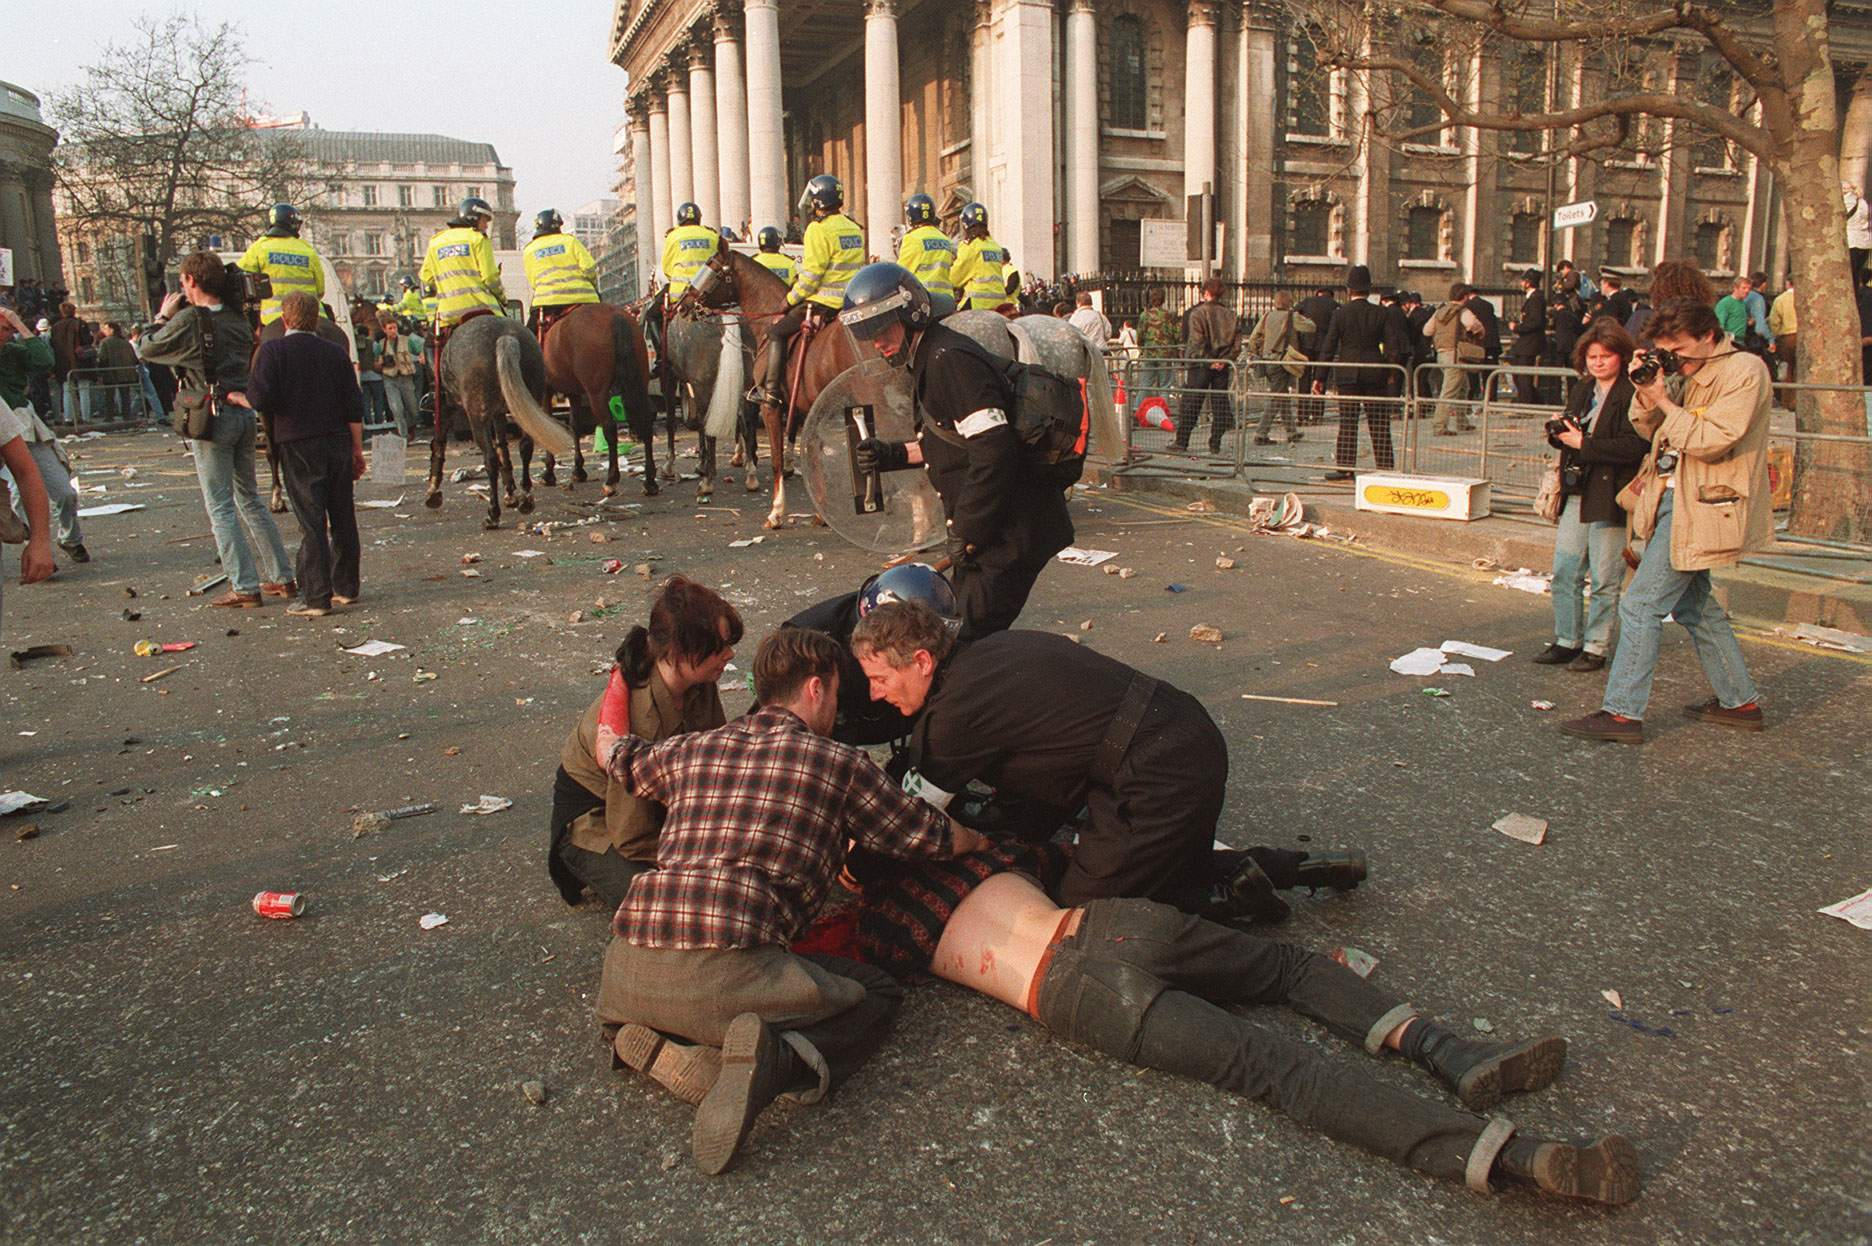 Police in riot gear treat an injured protester in Trafalgar Square, London, when rioting broke out after an anti-poll tax demonstration. 31/3/1990